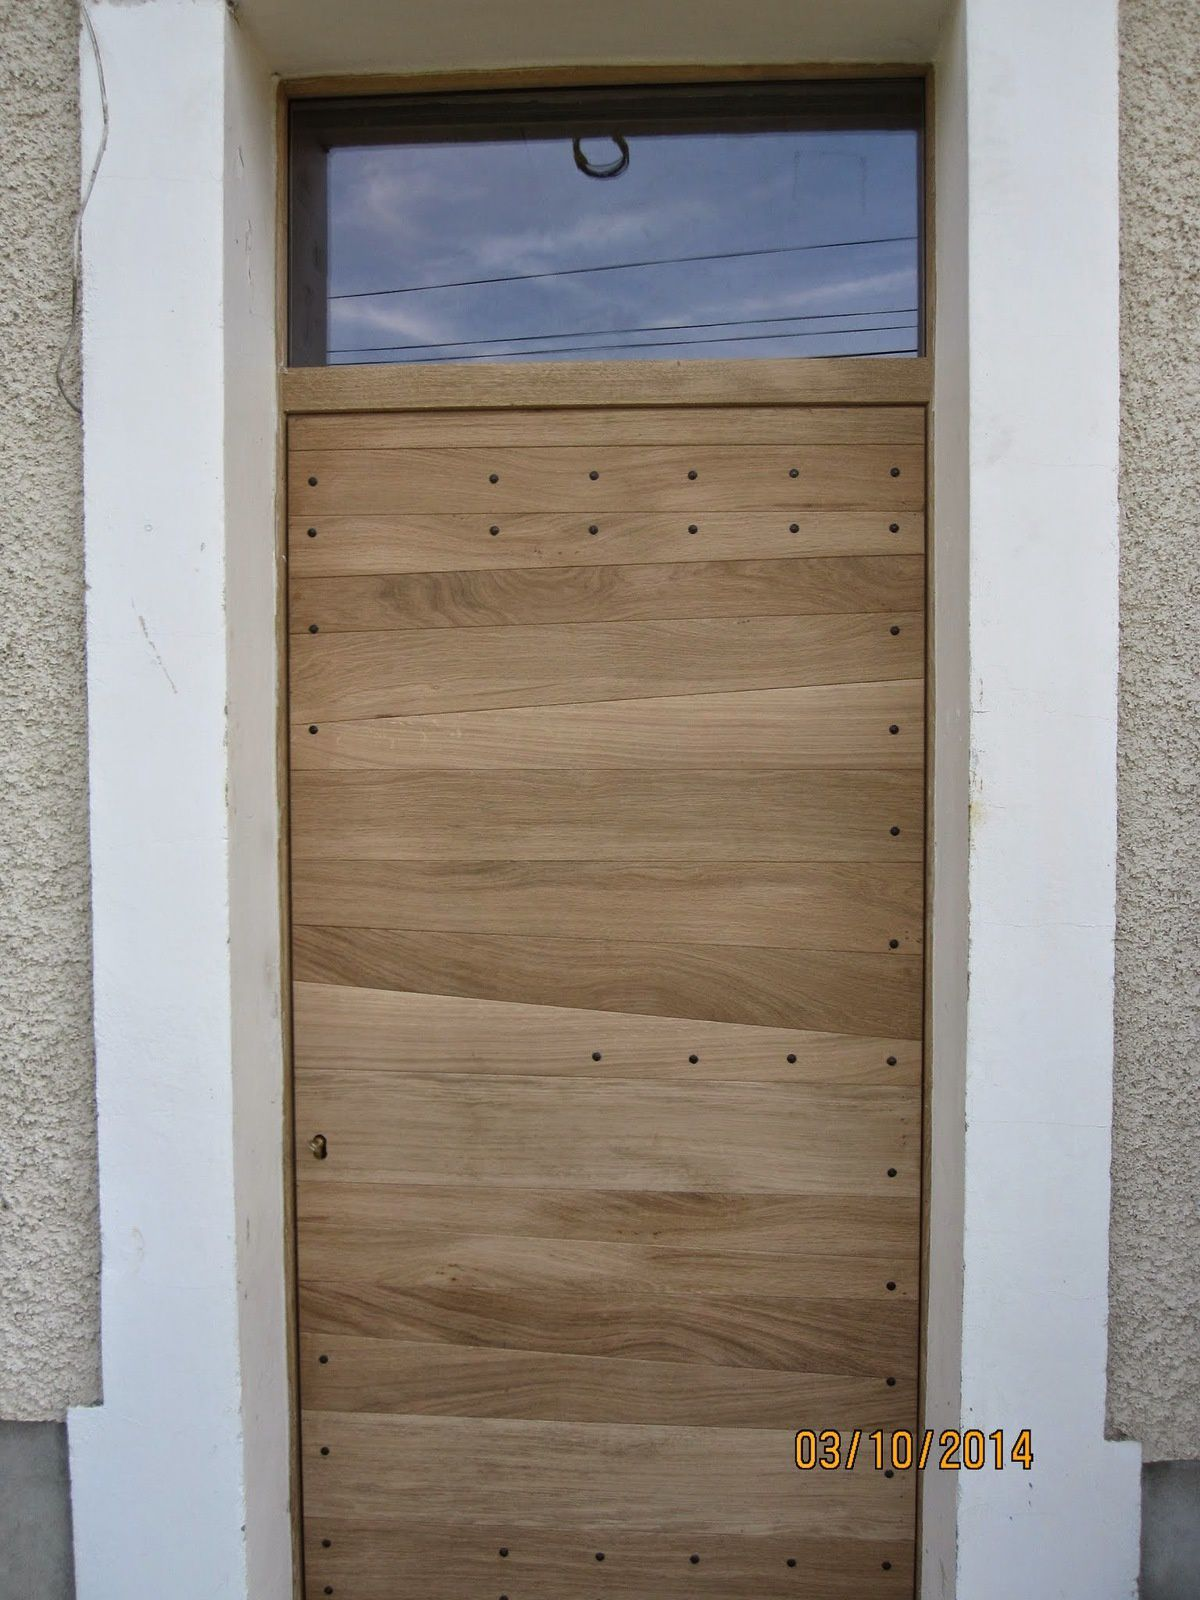 Porte planches horizontales en ext rieur menuiserie for Decoration habillage porte